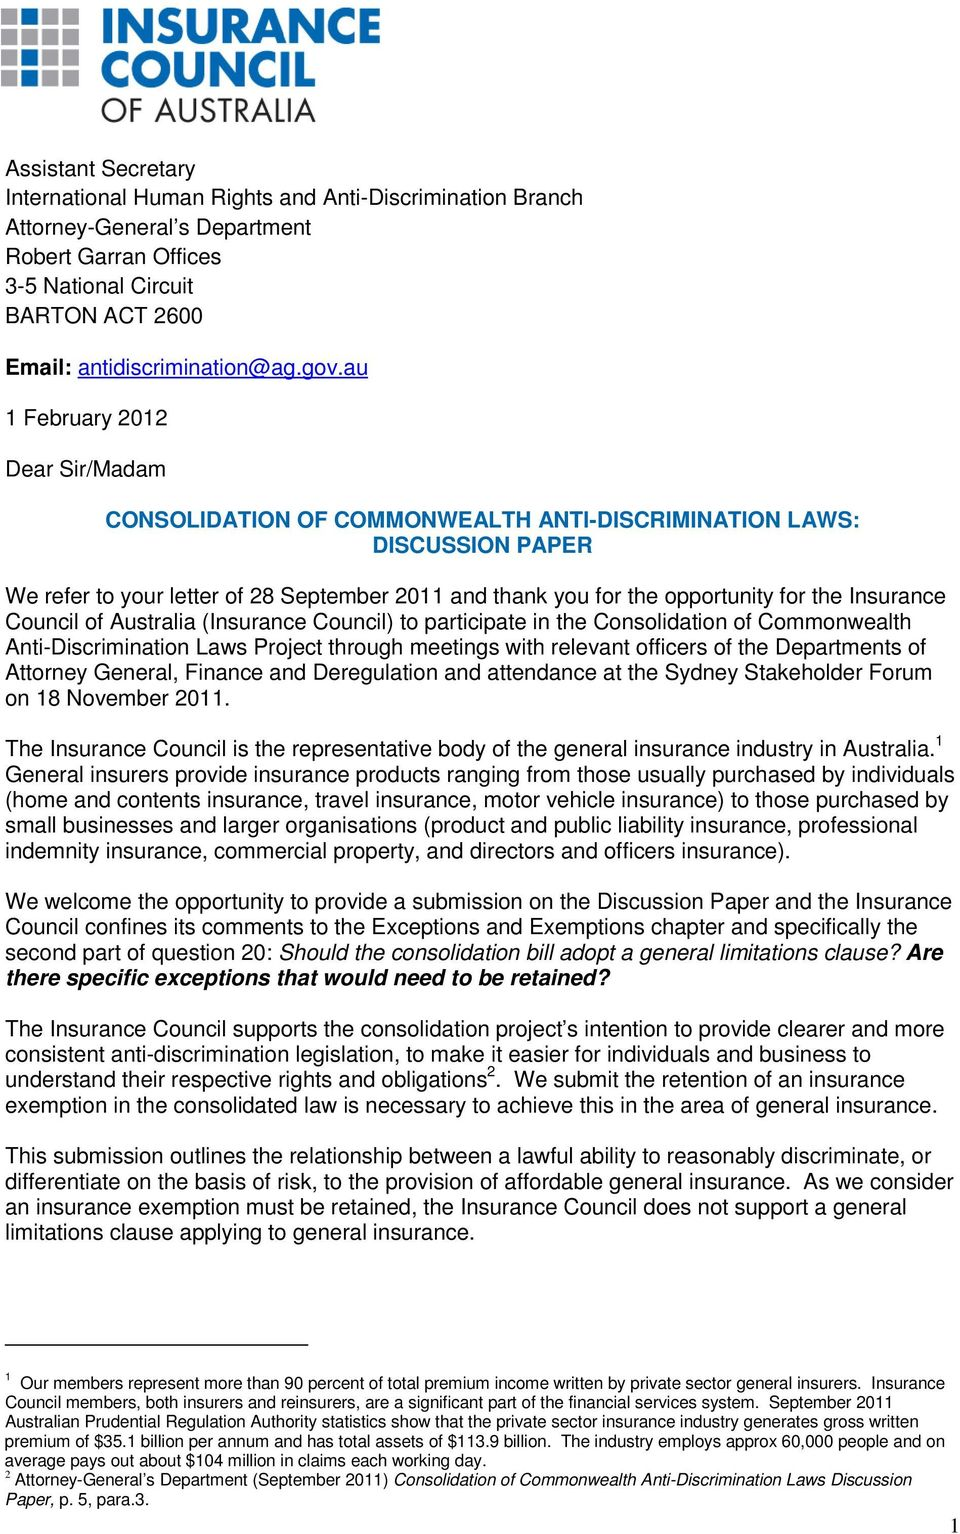 Insurance Council of Australia (Insurance Council) to participate in the Consolidation of Commonwealth Anti-Discrimination Laws Project through meetings with relevant officers of the Departments of